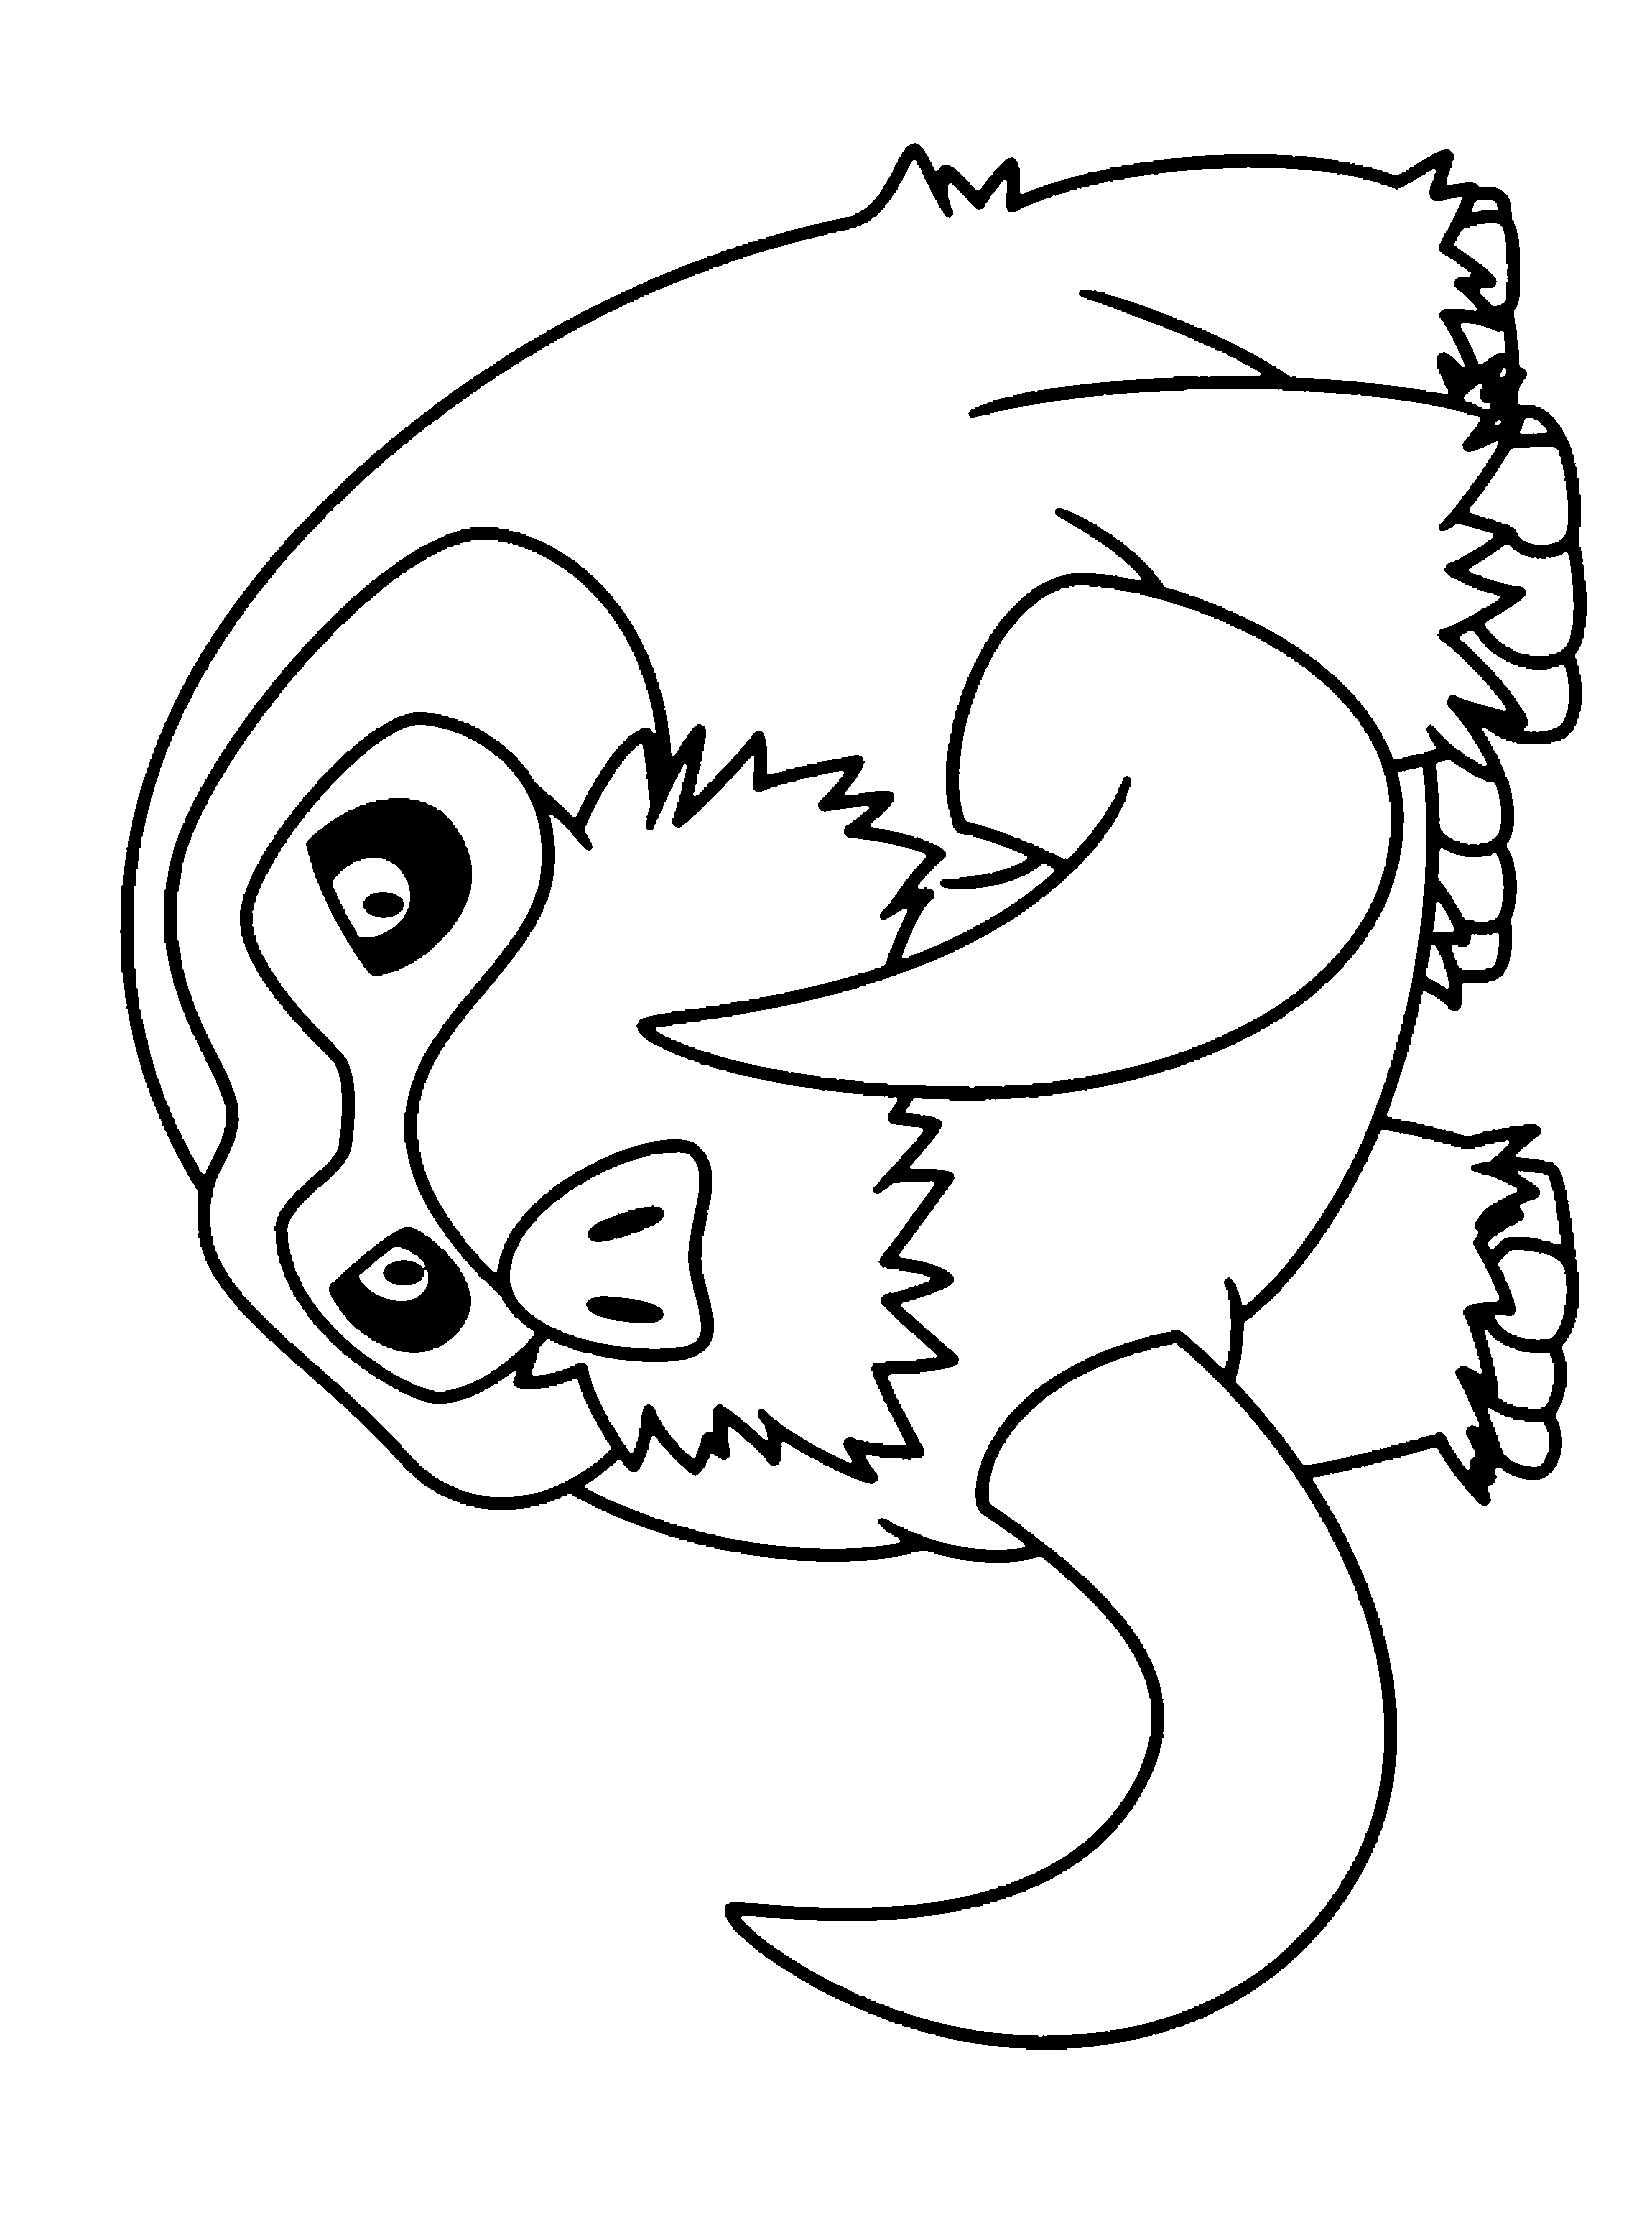 2300x3100 Full Pokemon Ball Coloring Page Drawing At Getdrawings Com Free